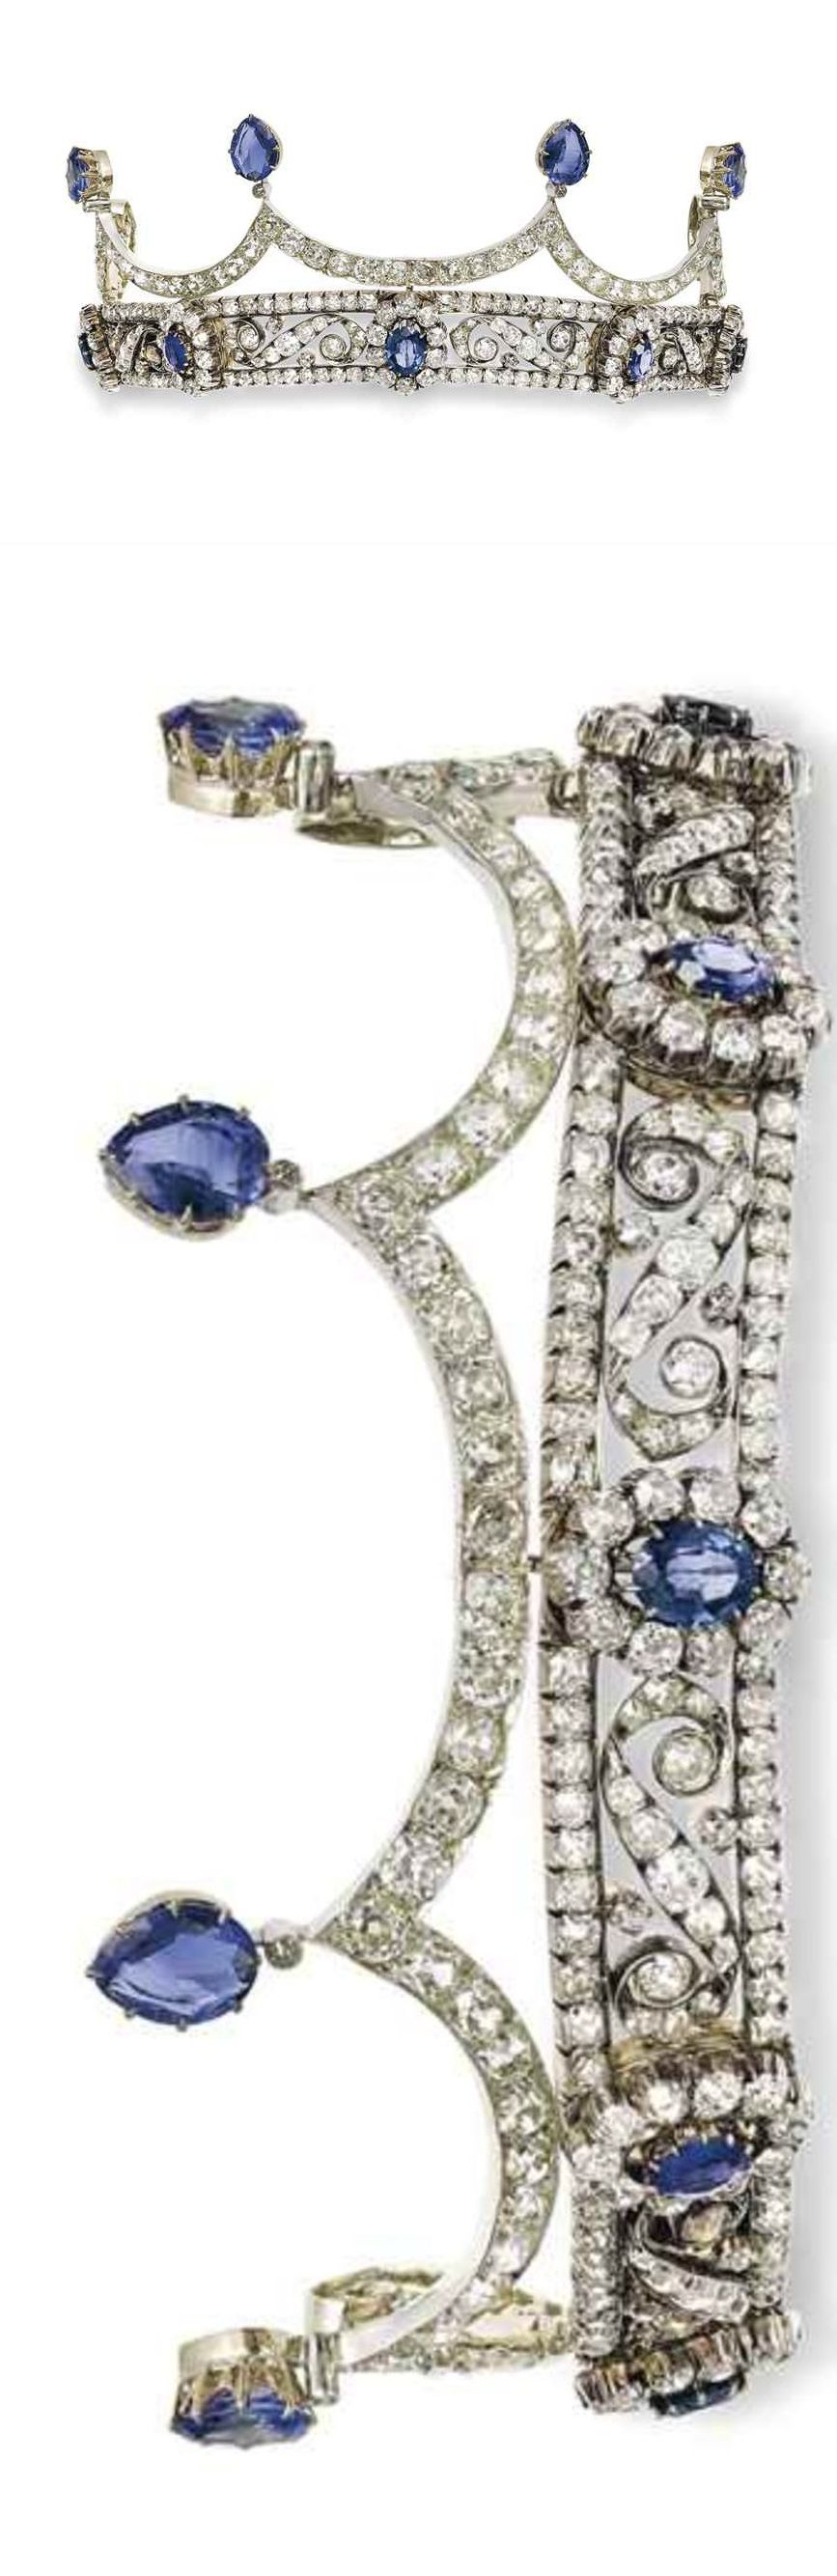 A 19TH CENTURY SAPPHIRE AND DIAMOND TIARA The base designed as an openwork scrolling bandeau, set with old-cut diamonds, applied with five sapphire and diamond graduated clusters, the detachable surmount of scalloped design, set with old-cut diamonds and with pear-shaped sapphire accents, adapted, inner circumference 22.0 cm